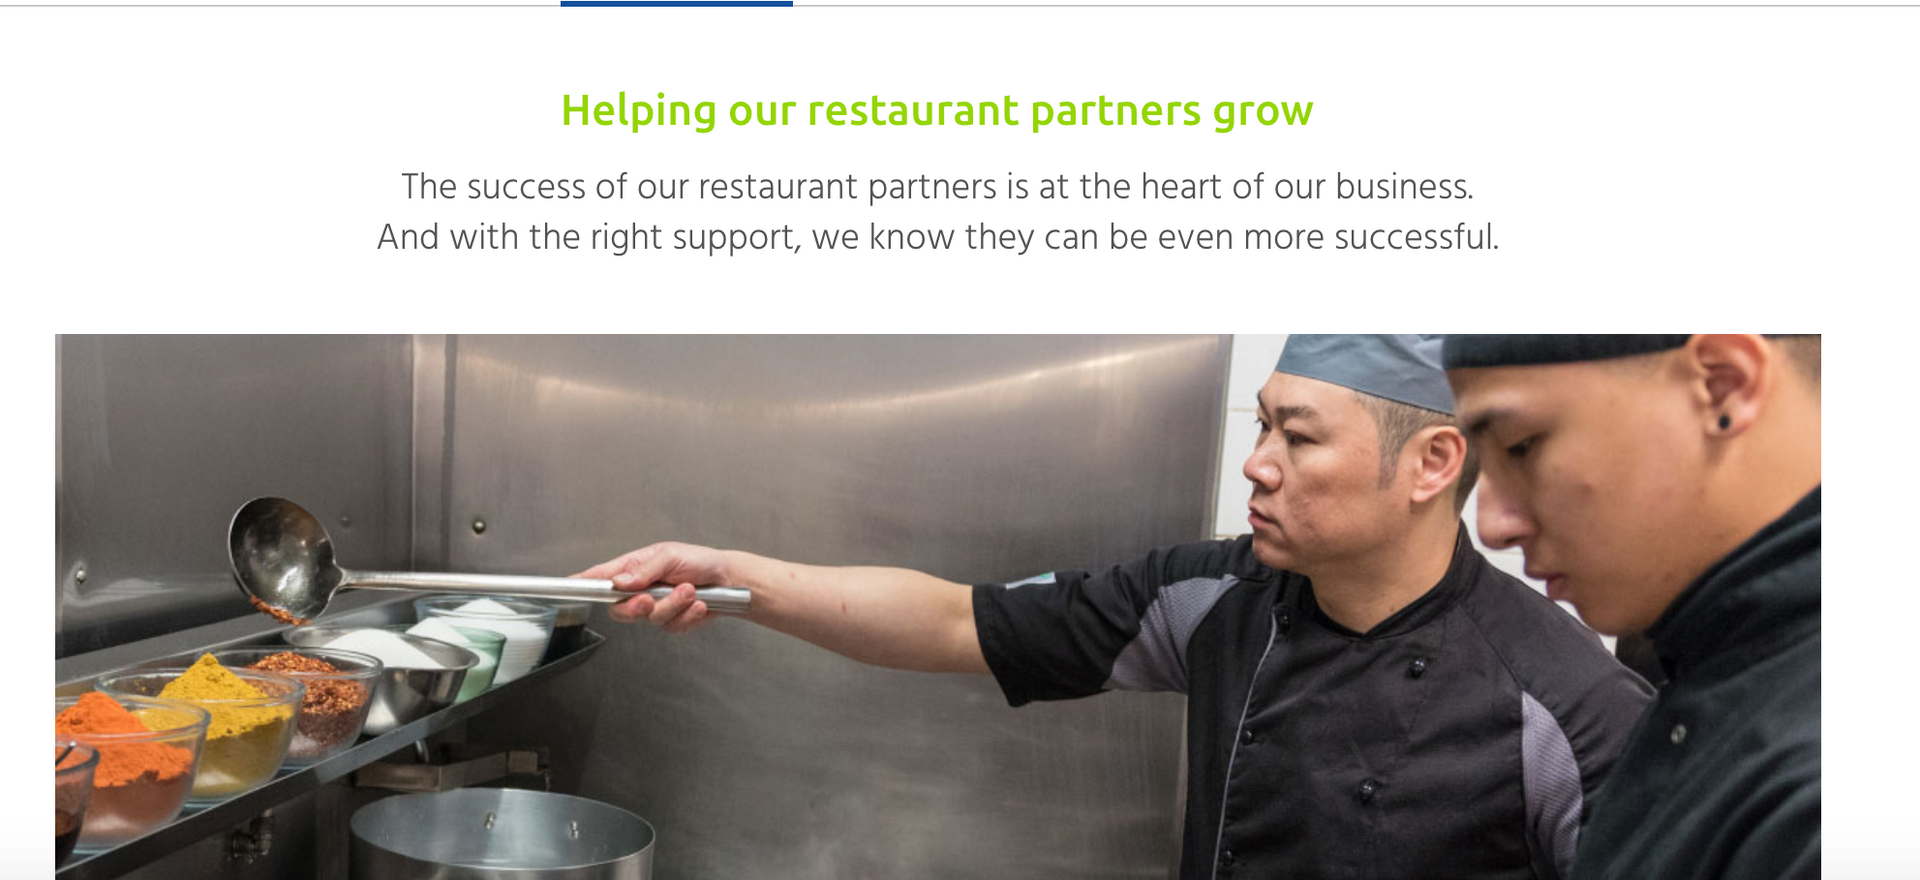 Just Eat helping partners grow